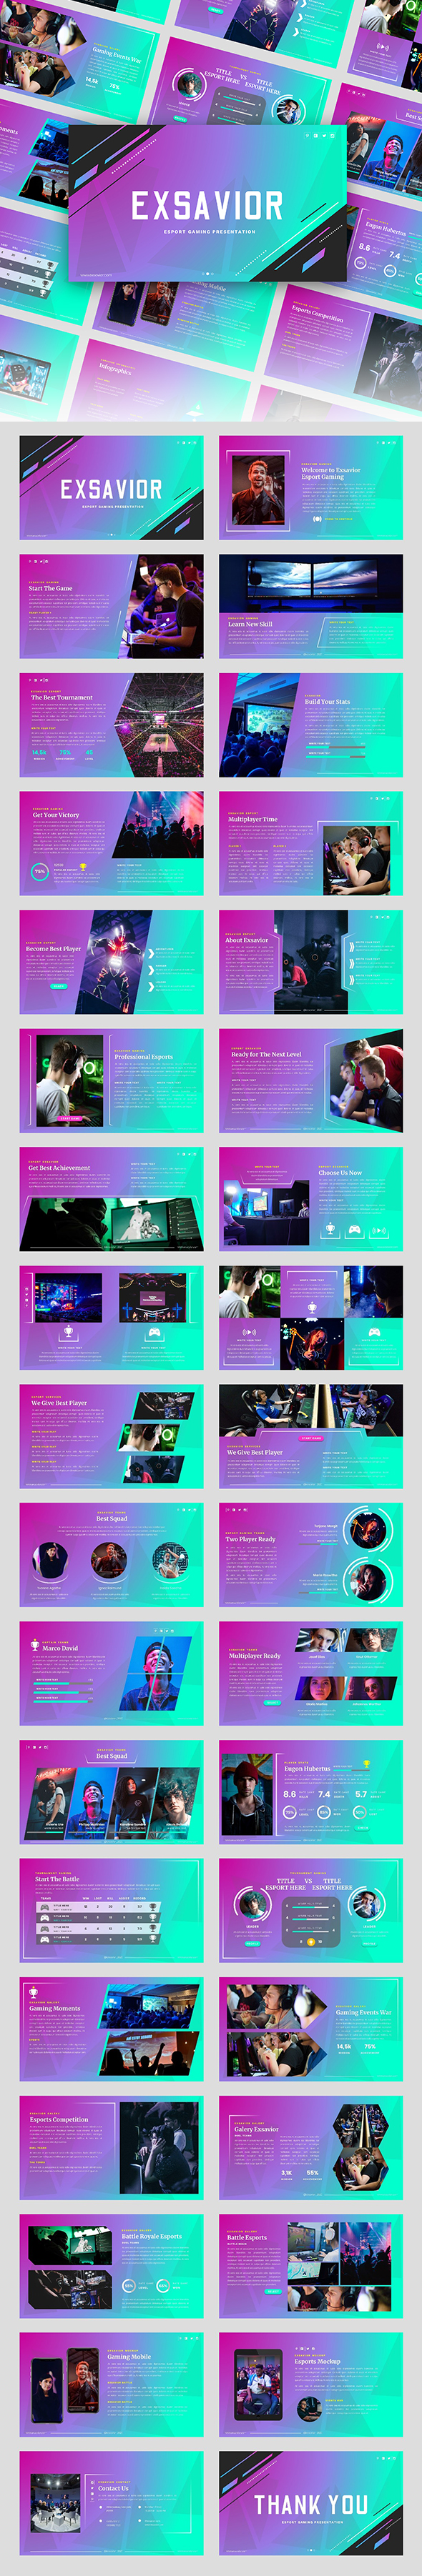 Exsavior - Gaming PowerPoint Template